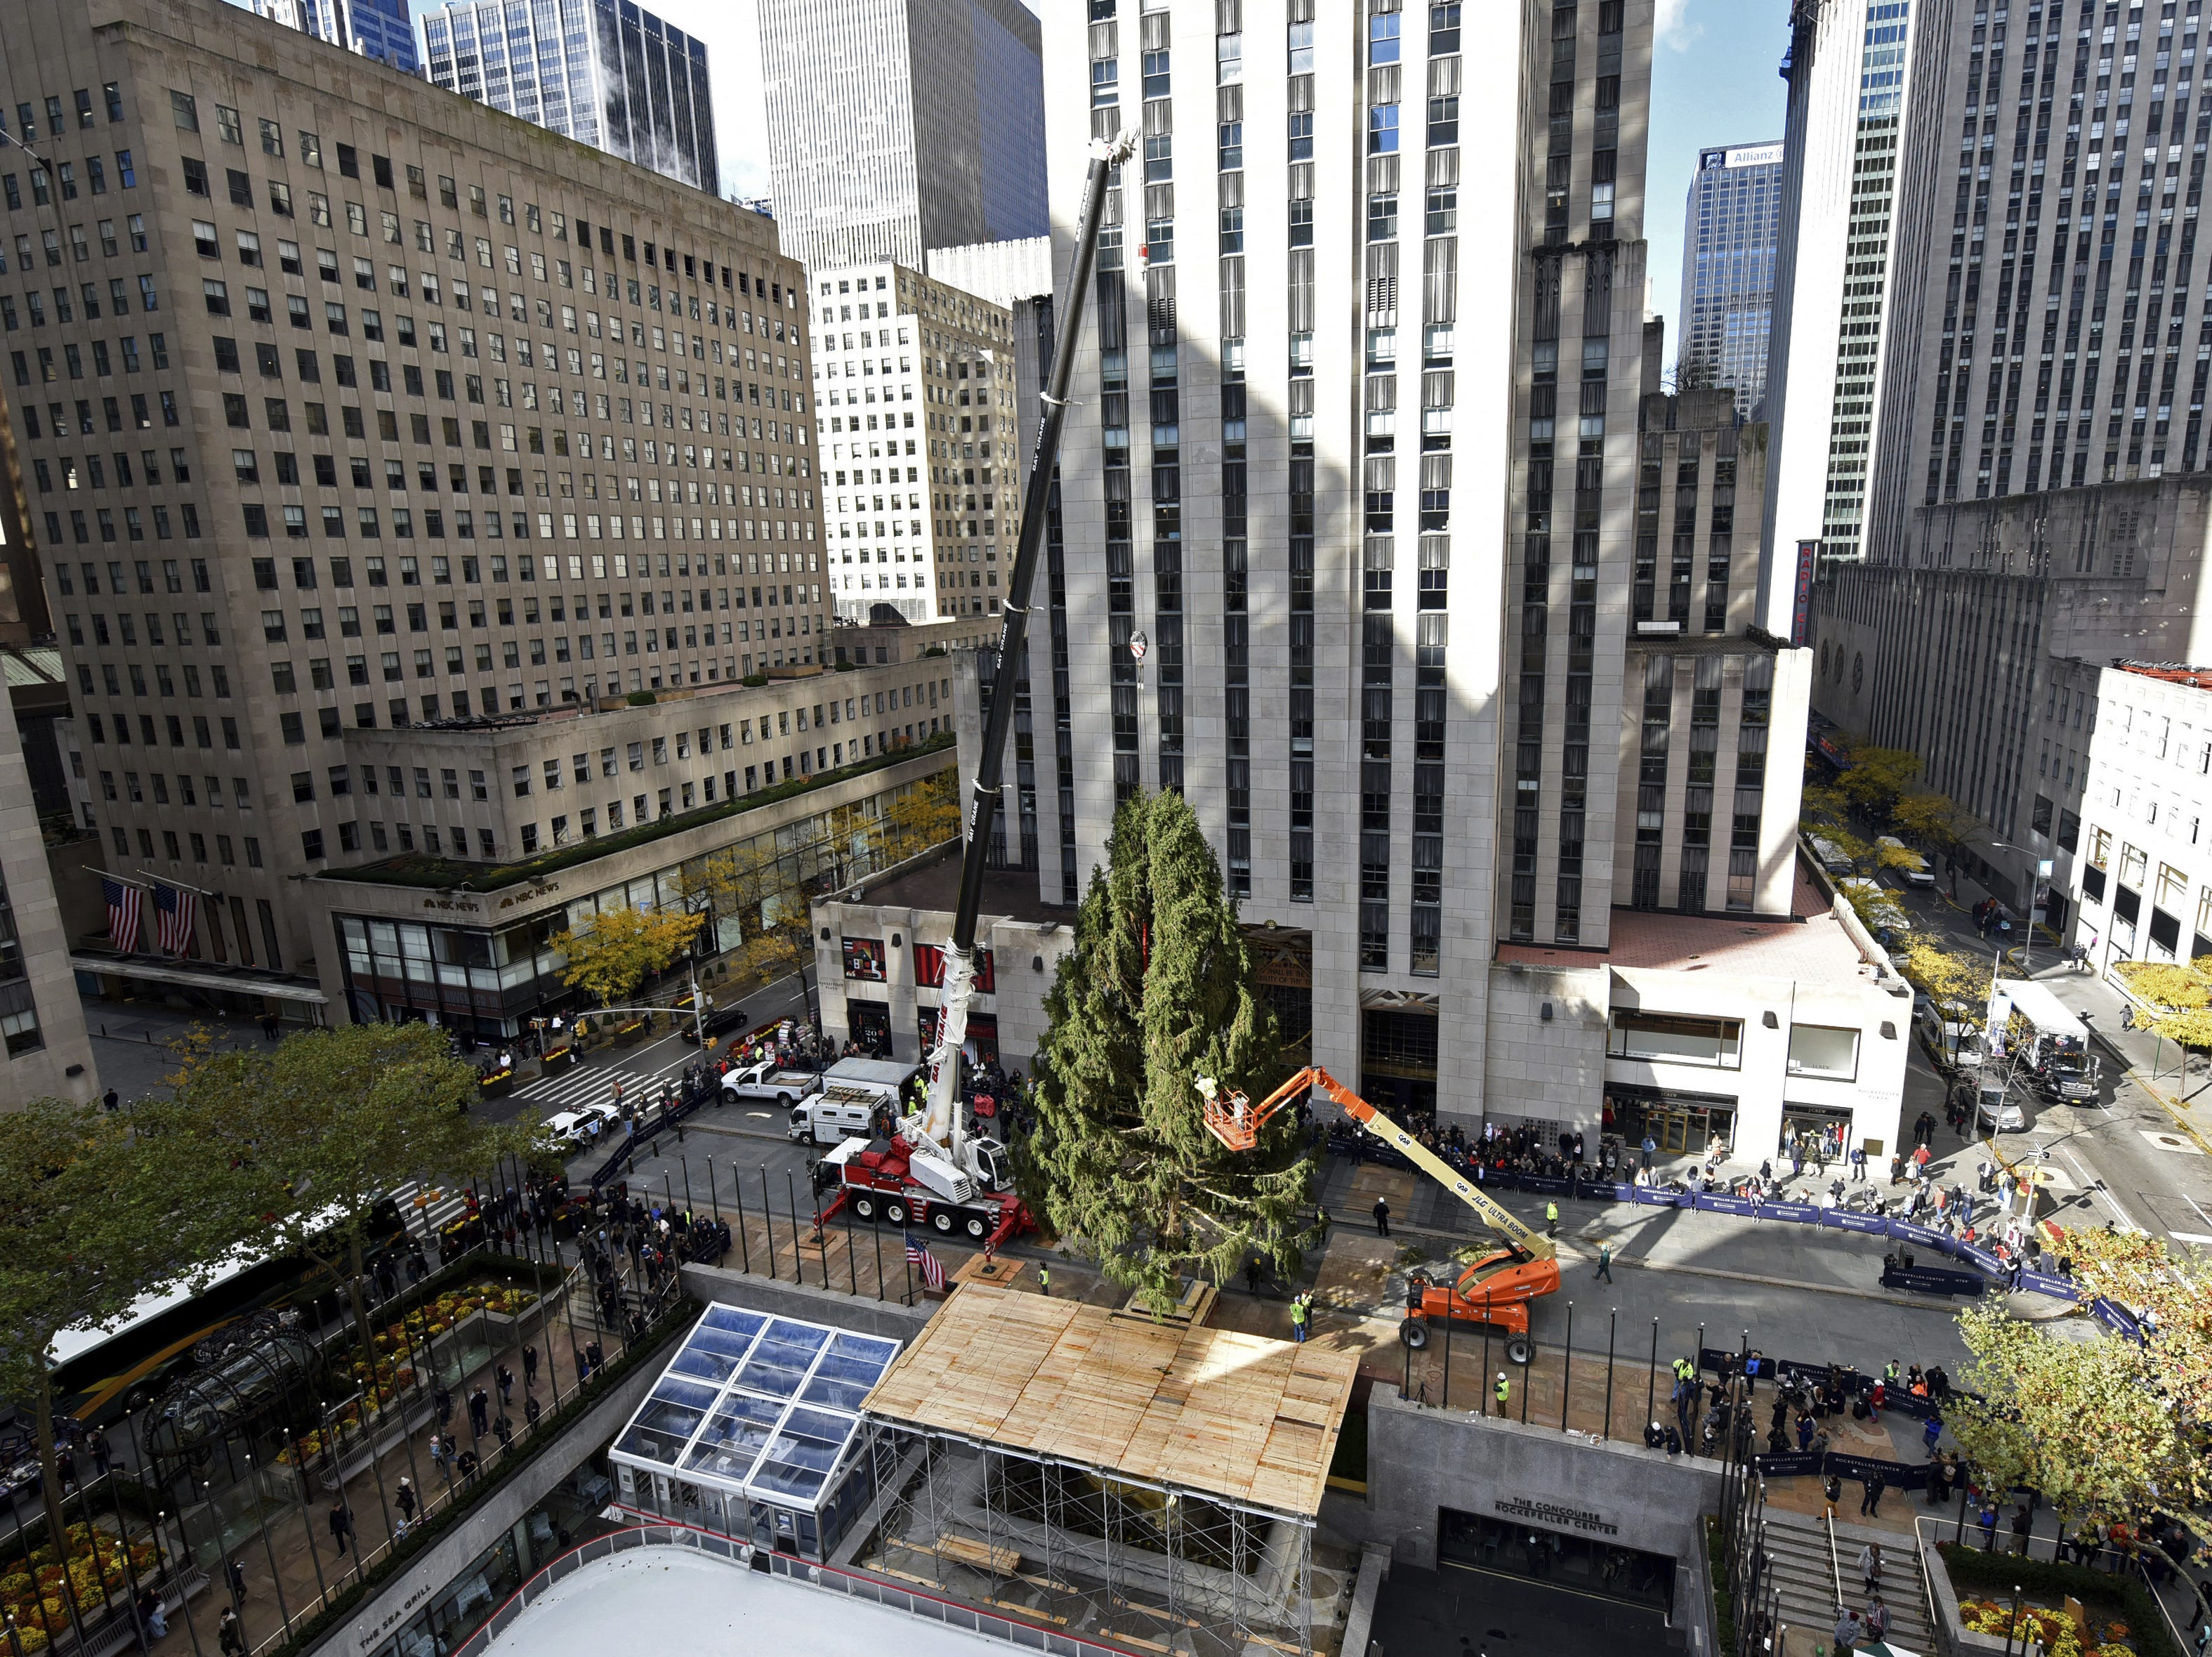 This year?s Rockefeller Center Christmas tree, which was donated by a Wallkill couple, was set up in its new New York City home on Saturday, where it will stay until Jan. 7. The tree will be lit up on Nov. 28 during an official televised lighting ceremony. The 72-foot-tall, 12-ton Norway spruce is 75 years old and was nicknamed Shelby by its Wallkill owners Lissette Gutierrez and Shirley Figueroa.